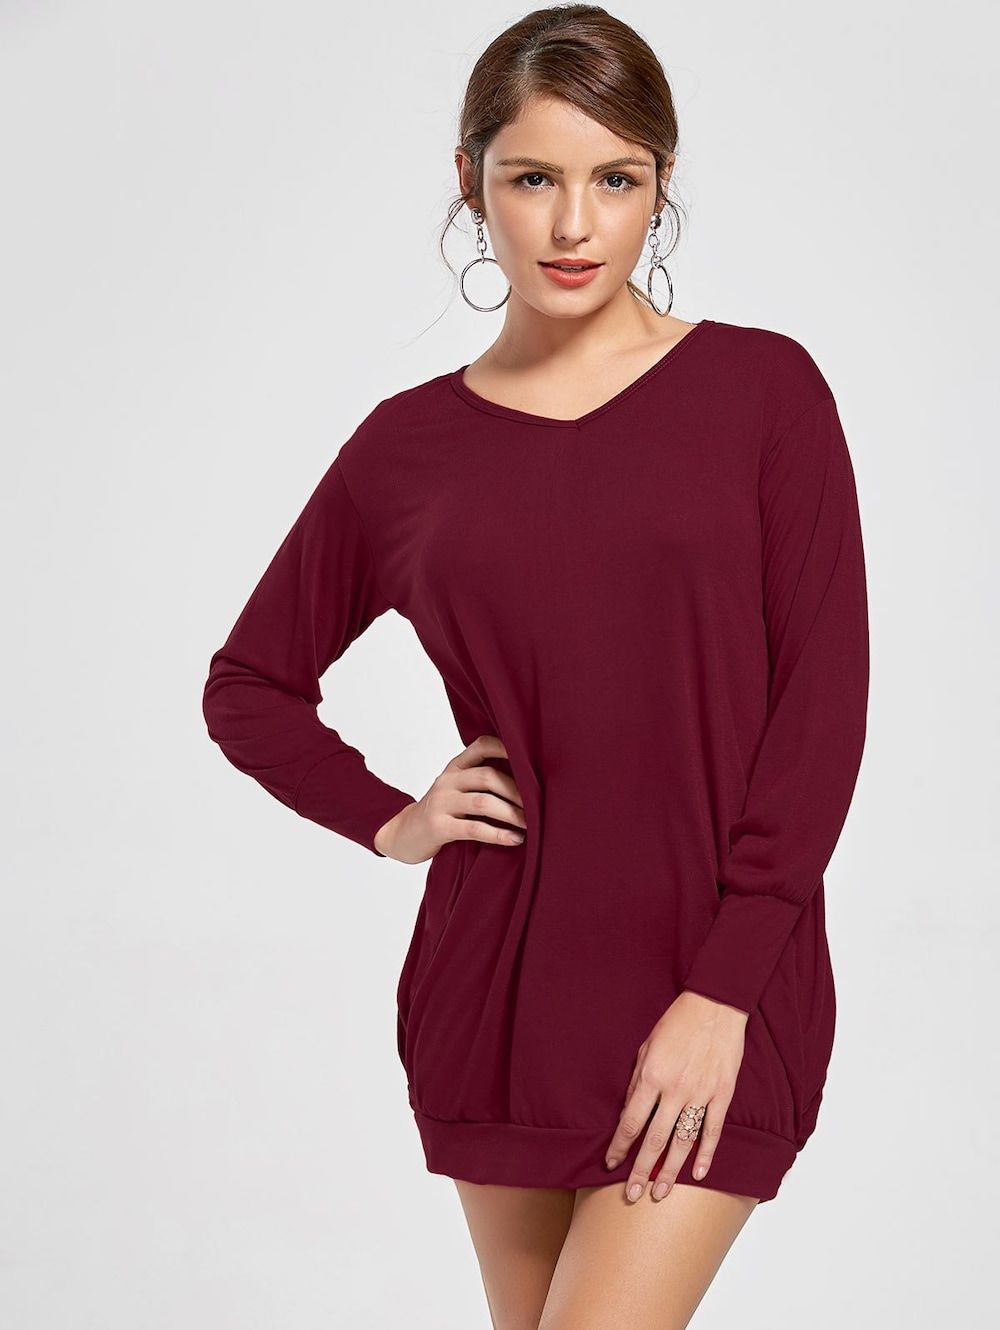 Stylish Plunging Neck Long Sleeve Pocket Design Solid Color Women s Dress -  WINE RED XL 146e7c0f7947